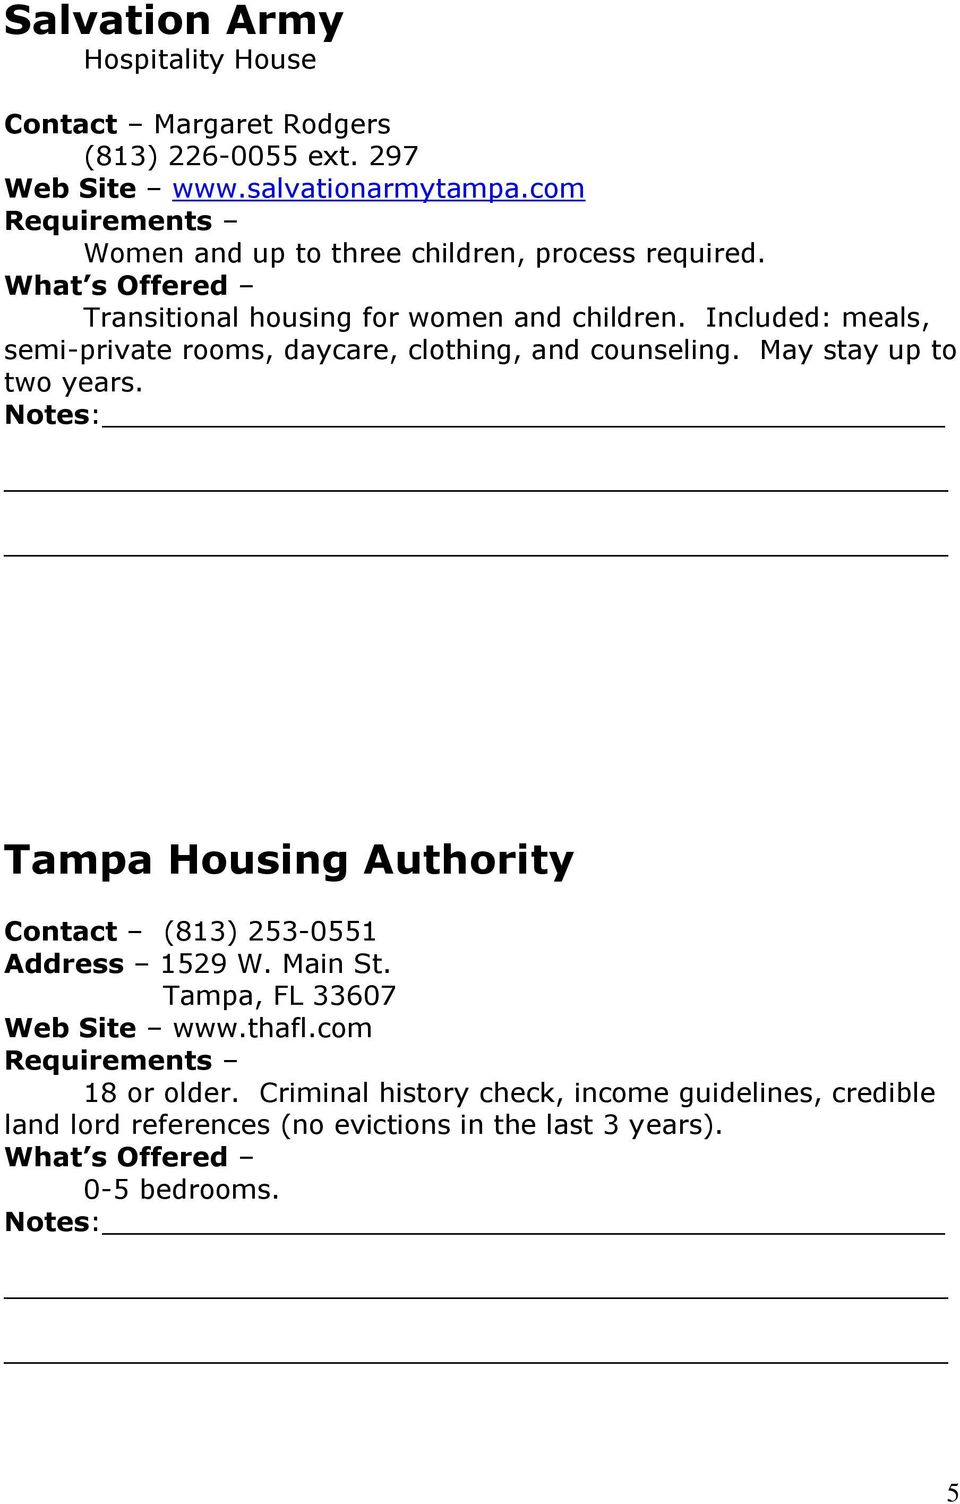 tampa phone chat lines